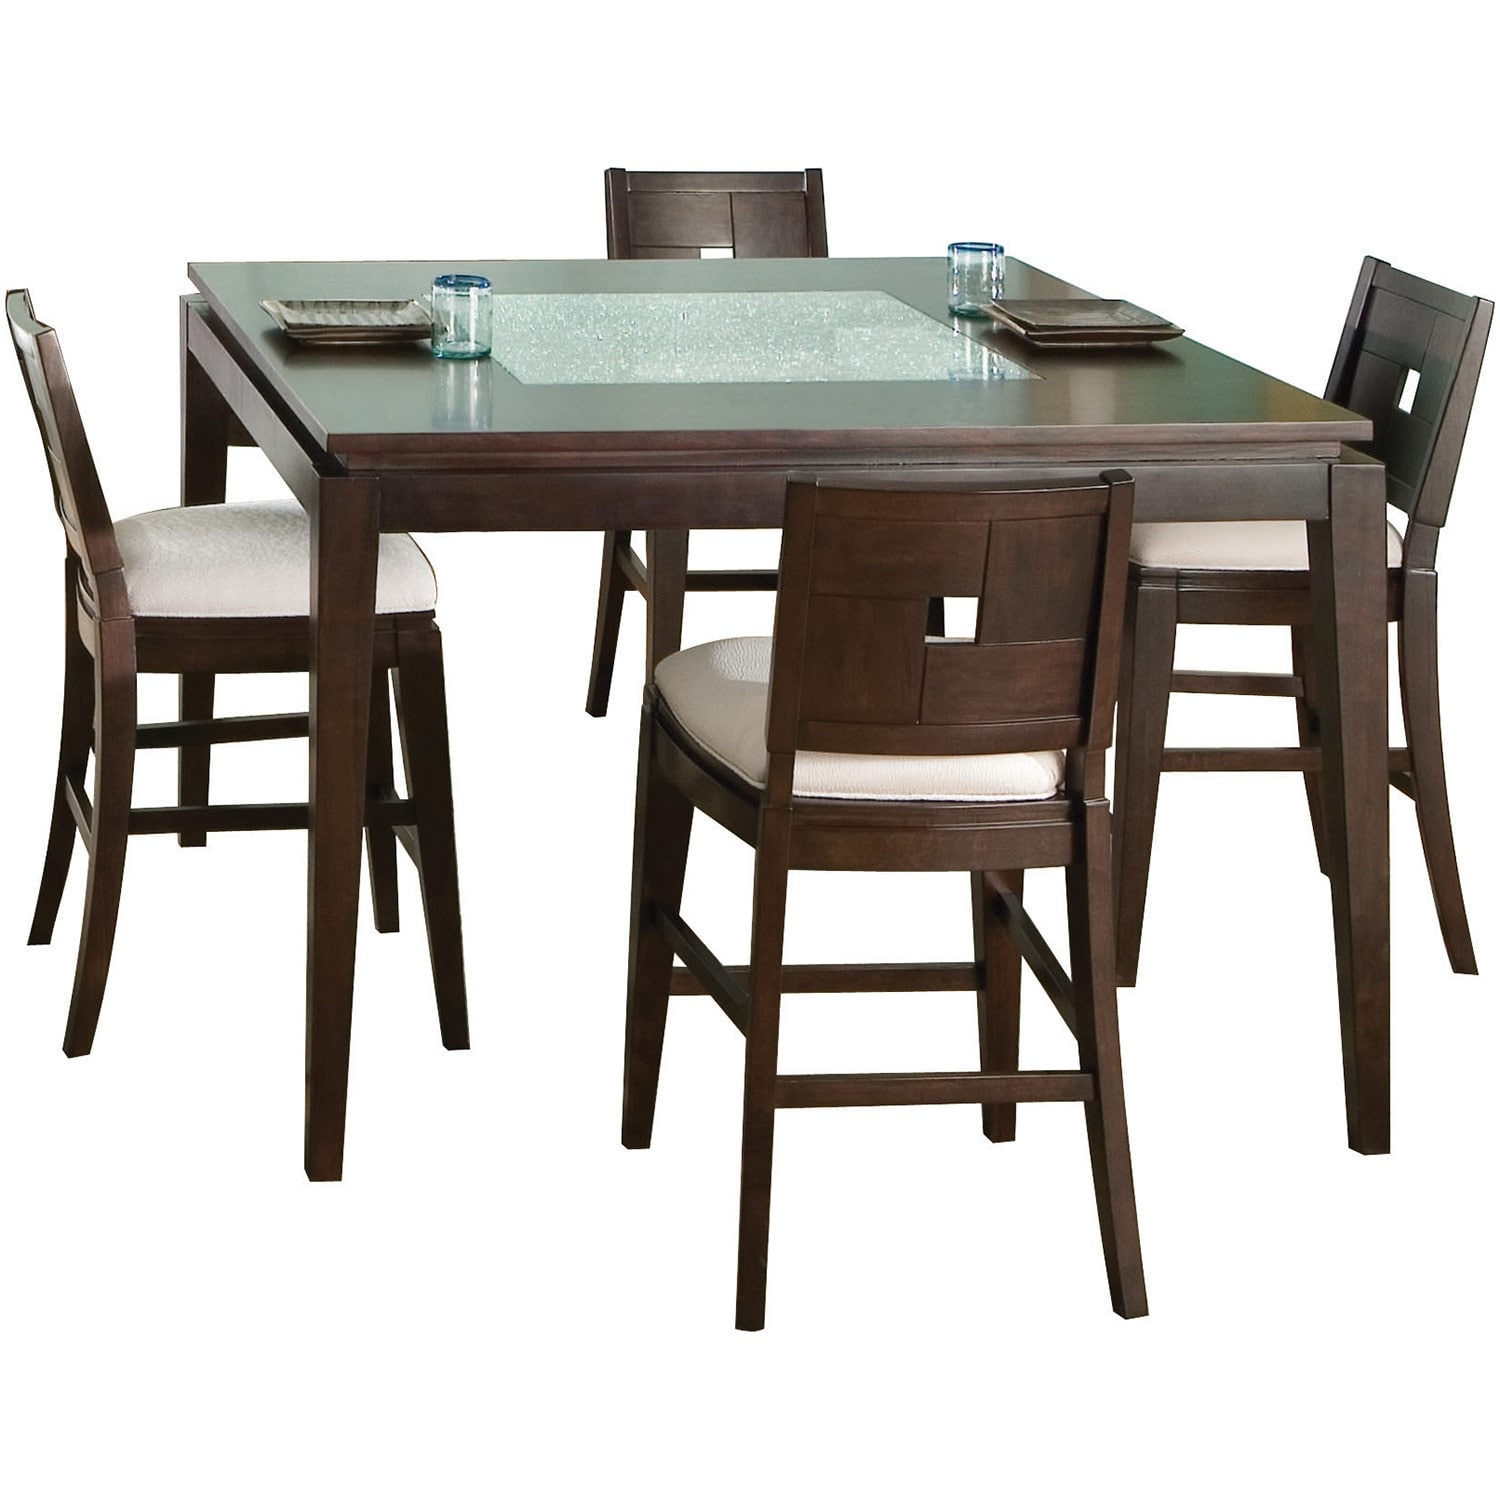 Dining Room Furniture - Spiga 5 Piece Counter-Height Dining Package